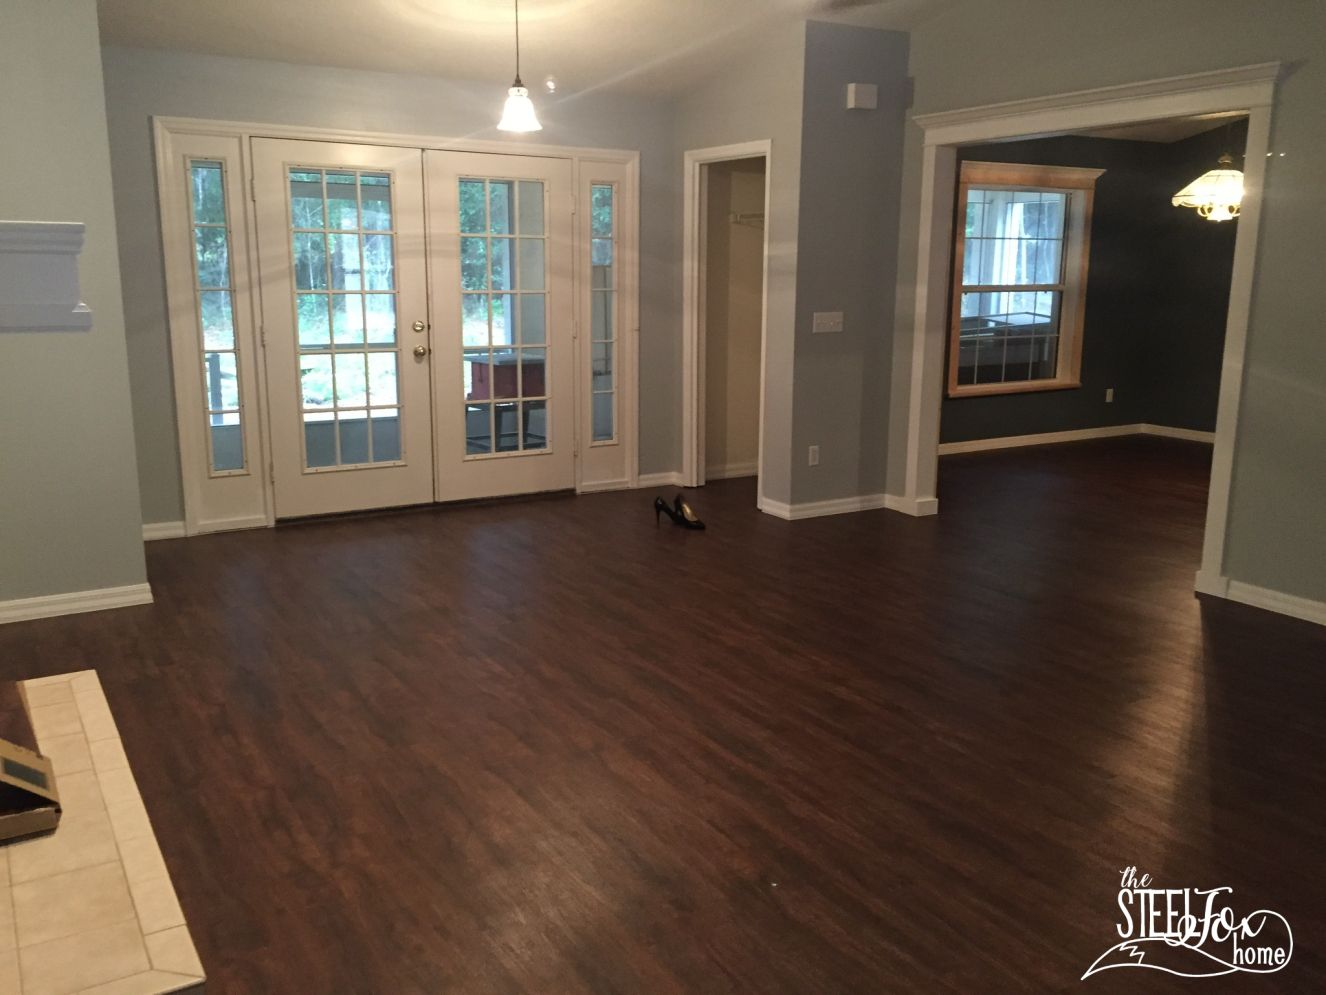 Luxury Vinyl Plank Wood Flooring Whole House Makeover Why We Choose Vinyl Pros And Cons And Our Honest Rev Vinyl House Vinyl Flooring Vinyl Flooring Kitchen